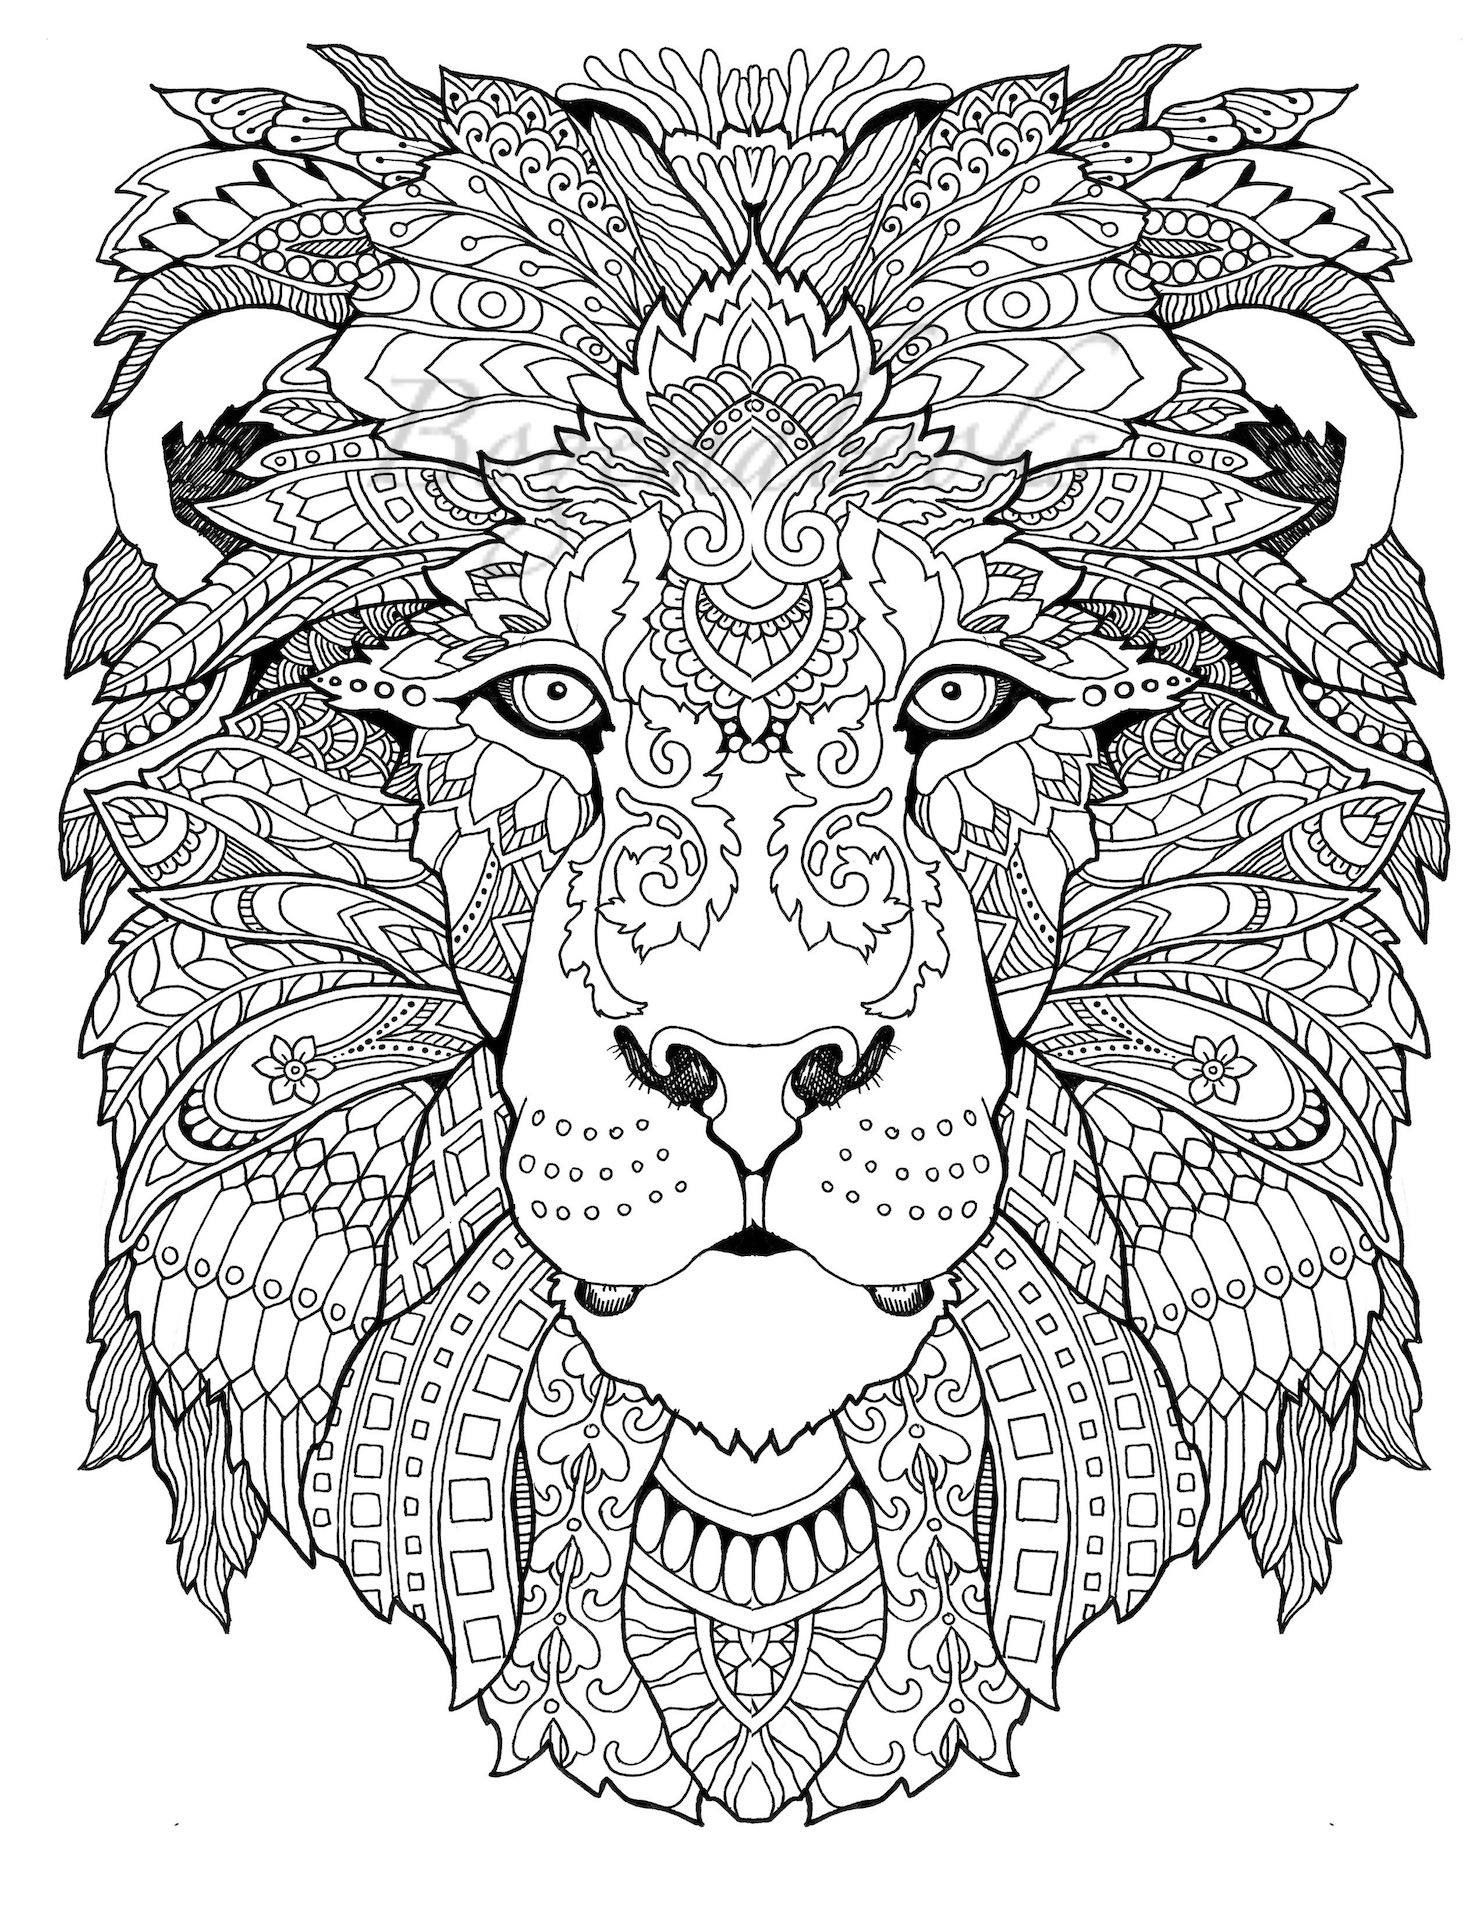 Awesome Animals Adult Coloring Book Coloring Pages Pdf | Awesome - Free Printable Coloring Book Pages For Adults